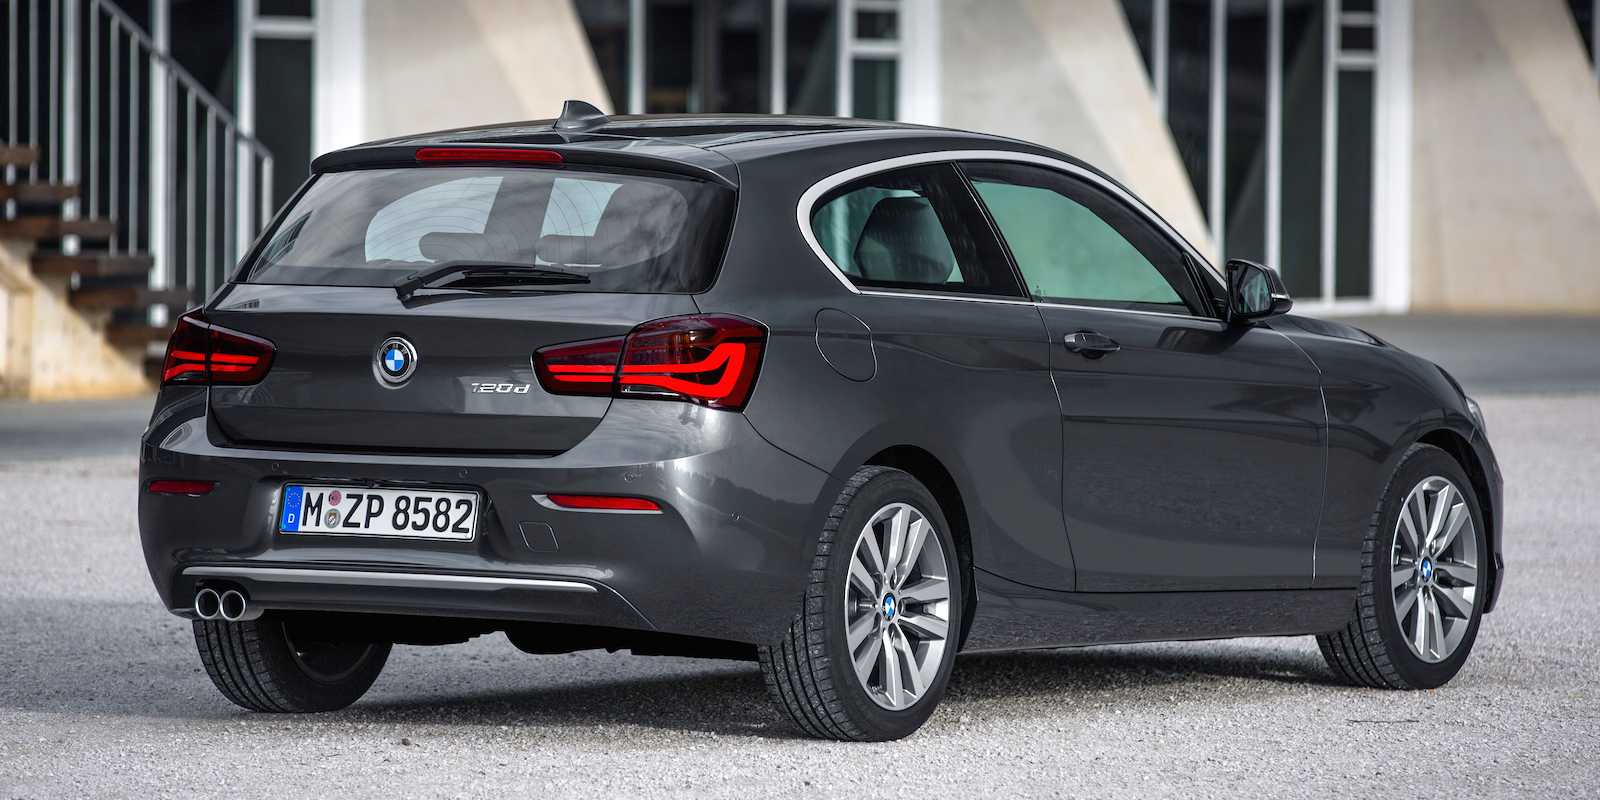 2015 Bmw 1 Series Fresh Looks Three Cylinder Engines For Updated Small Car Photos Caradvice